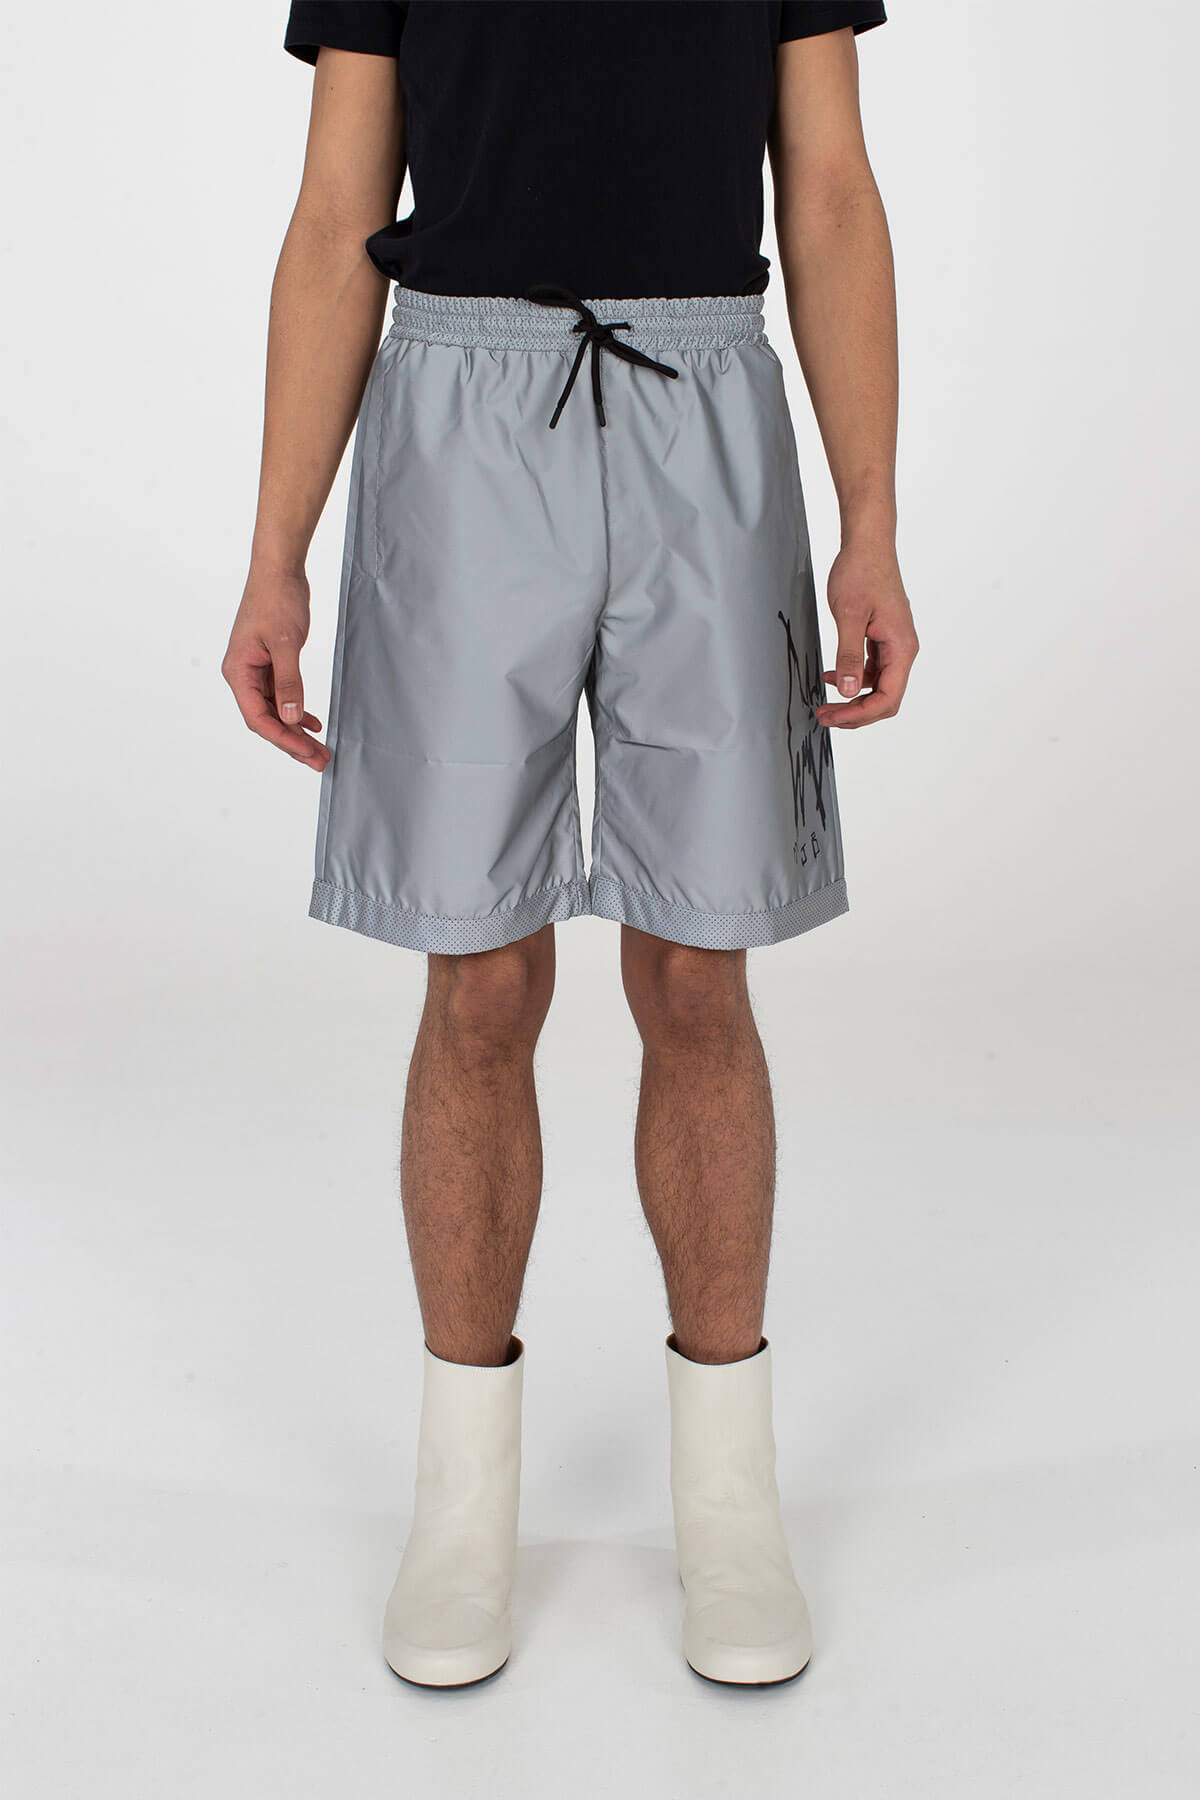 BASKETBALL SHORTS - 3M BOTTOM - MJB